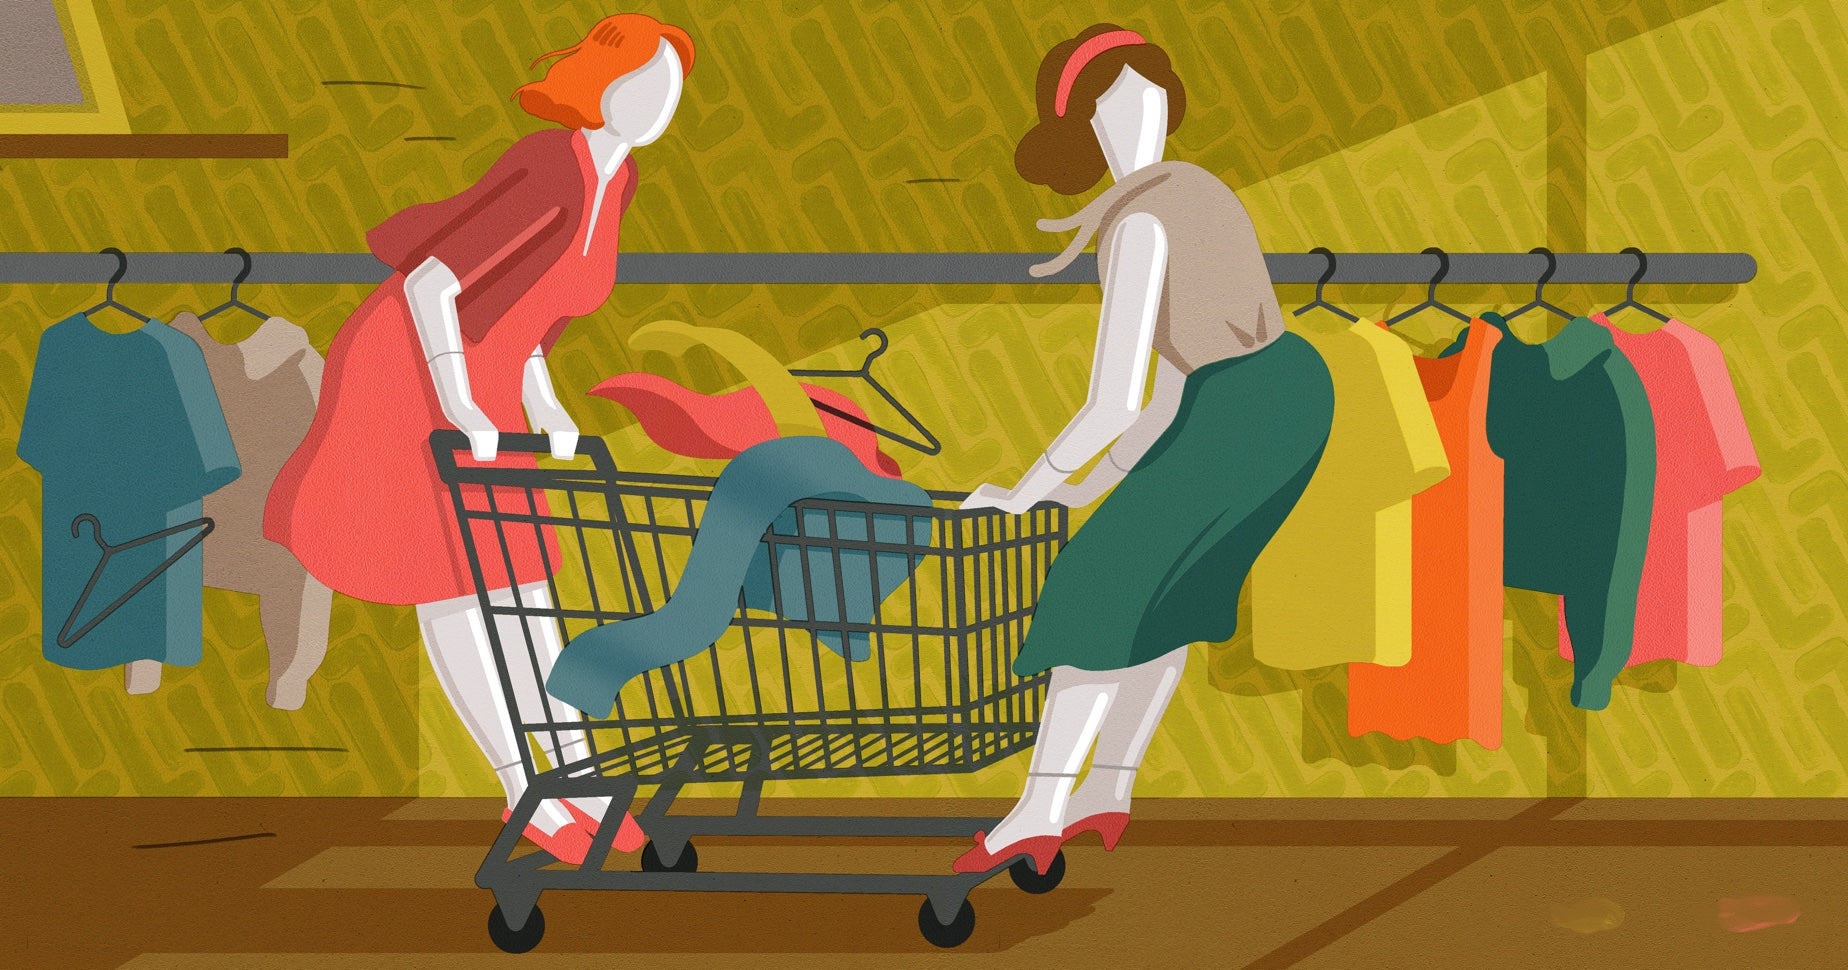 Illustration of two mannequins wearing vintage clothing taking a shopping cart for a ride